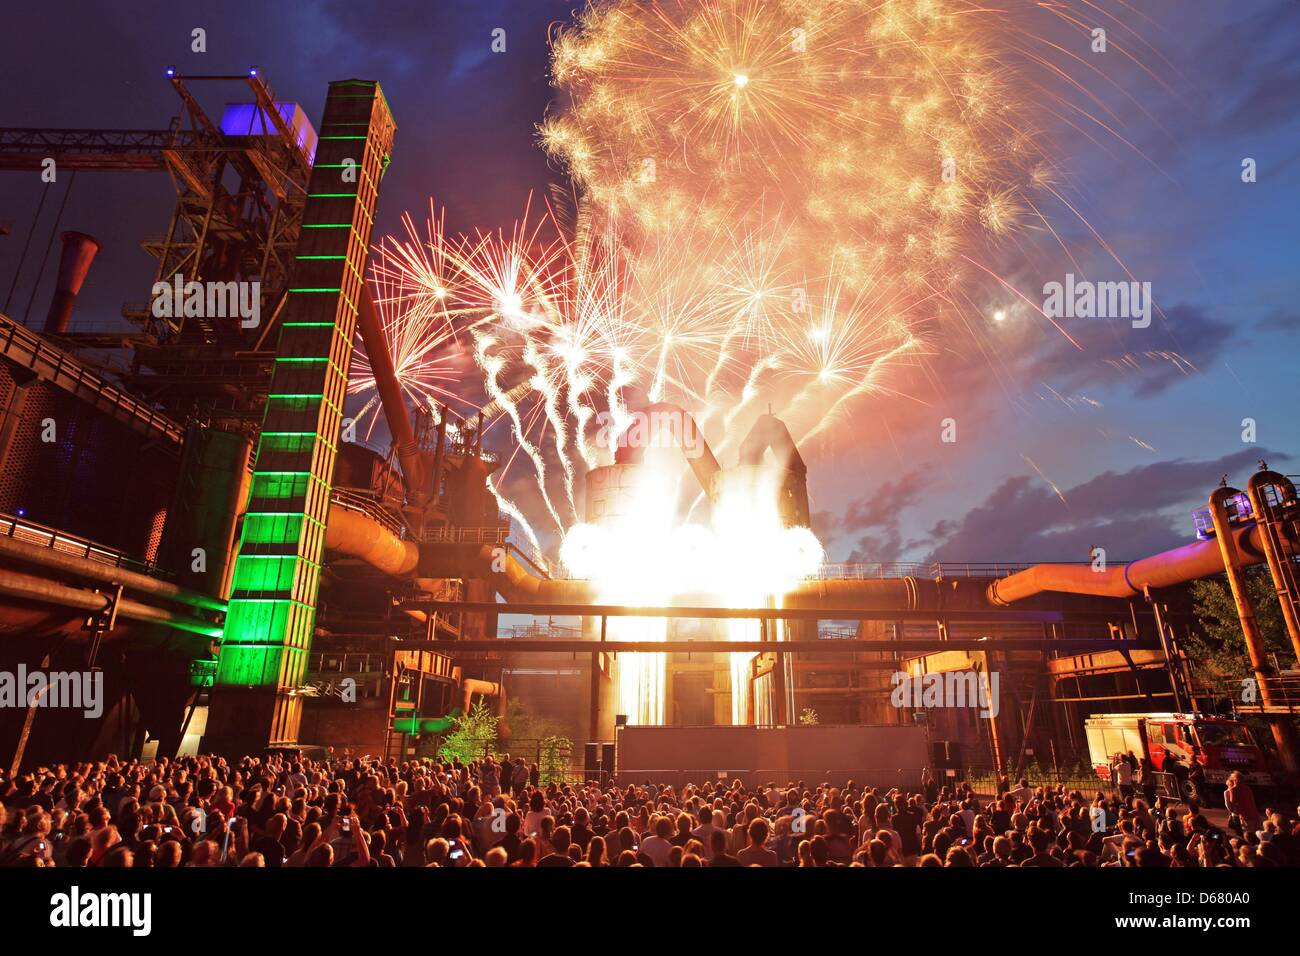 Visitors of the Night of Industrial Culture, also known as 'ExtraSchicht', view the fireworks in Duisburg, - Stock Image